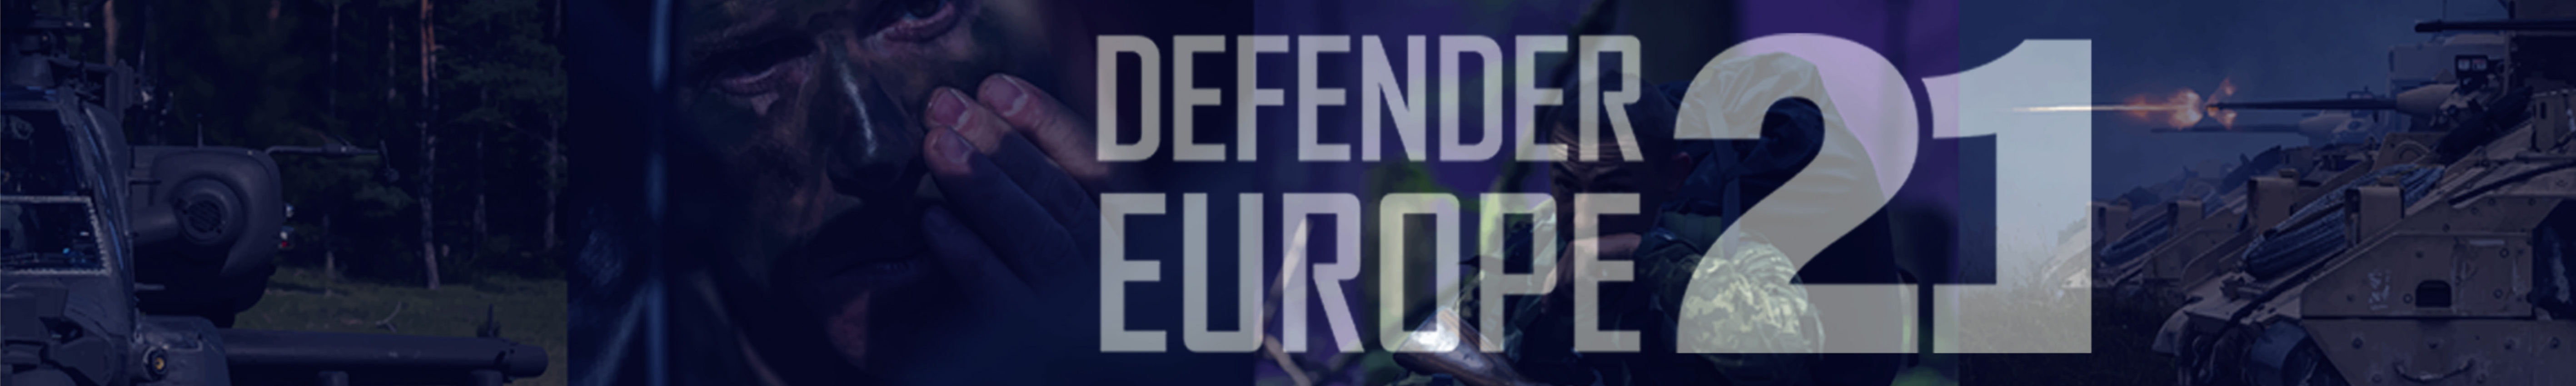 DEFENDER-Europe 21 Website Header